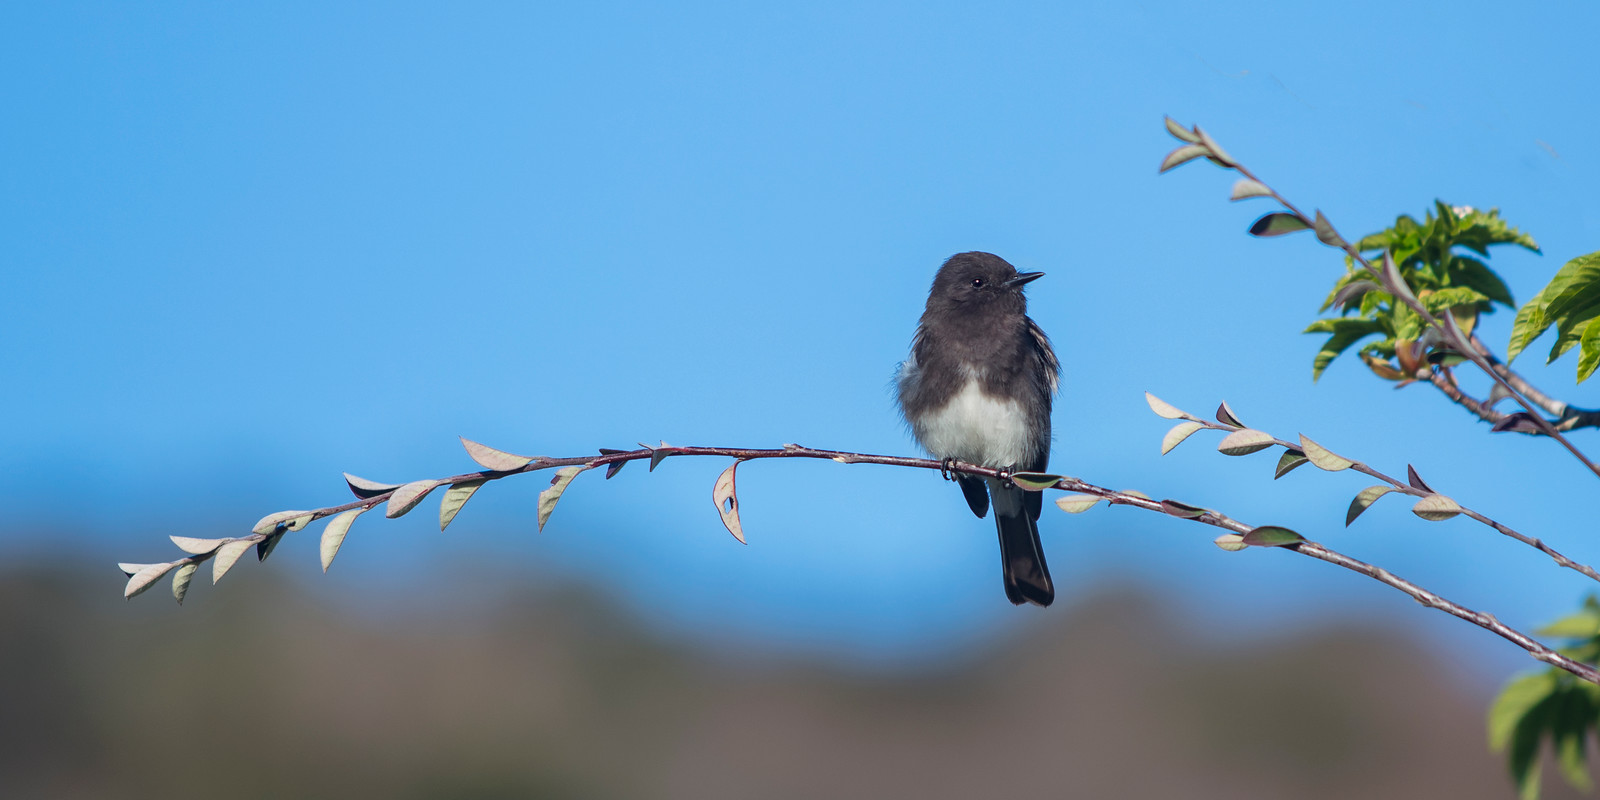 Black Phoebe, perched